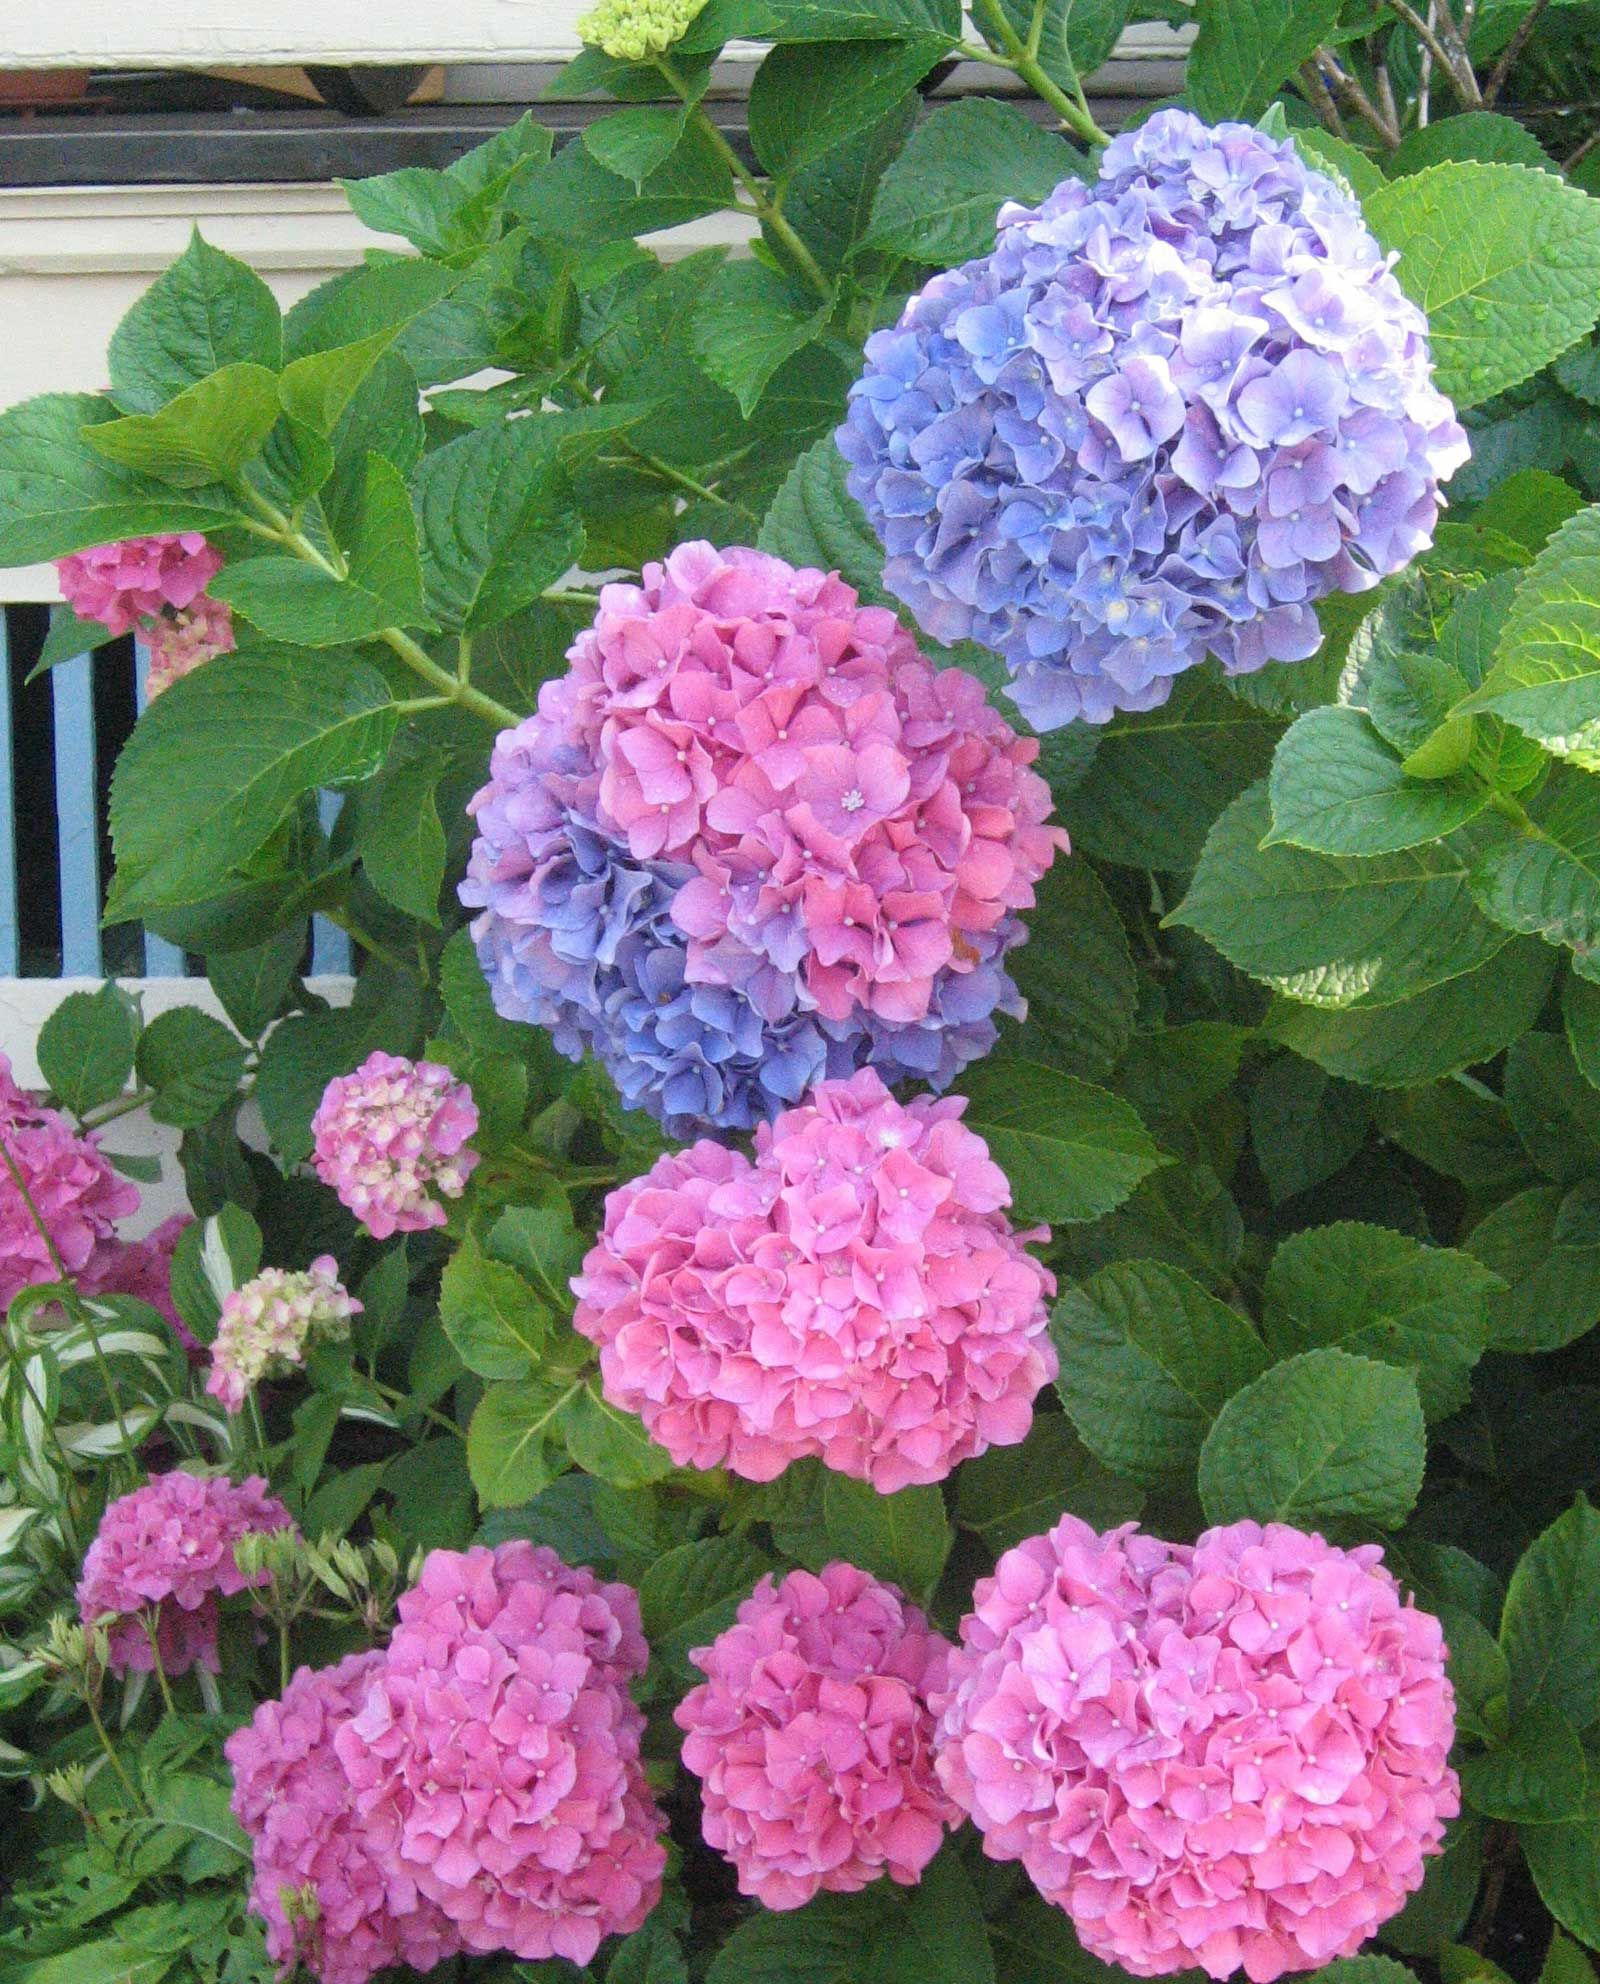 Big hydrangea blooms in pink and blue depending on the acidity of the soil